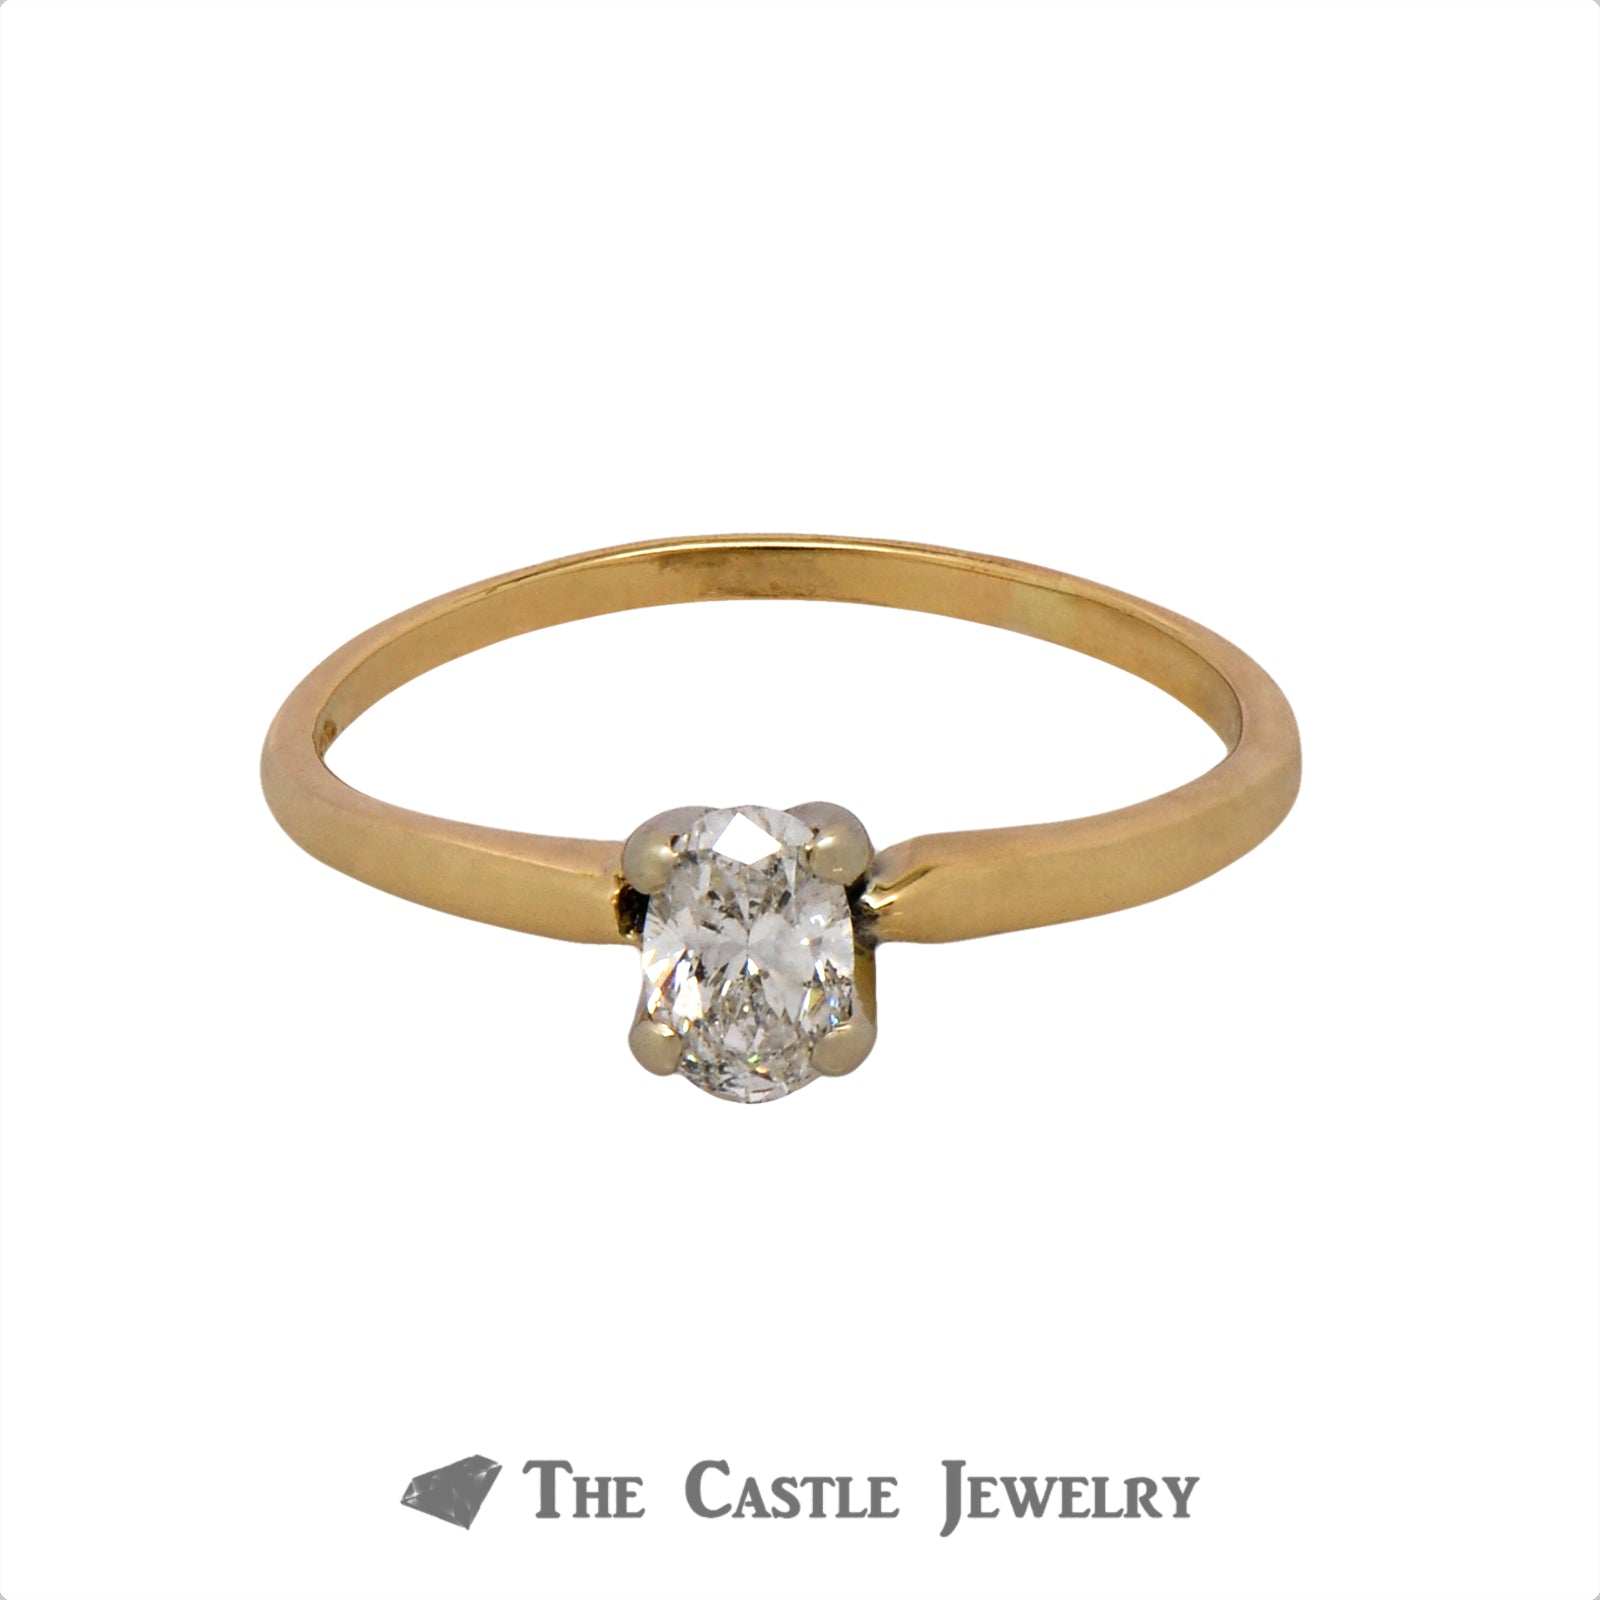 Oval Cut .45ct Diamond Solitaire Engagement Ring in 14k Yellow Gold